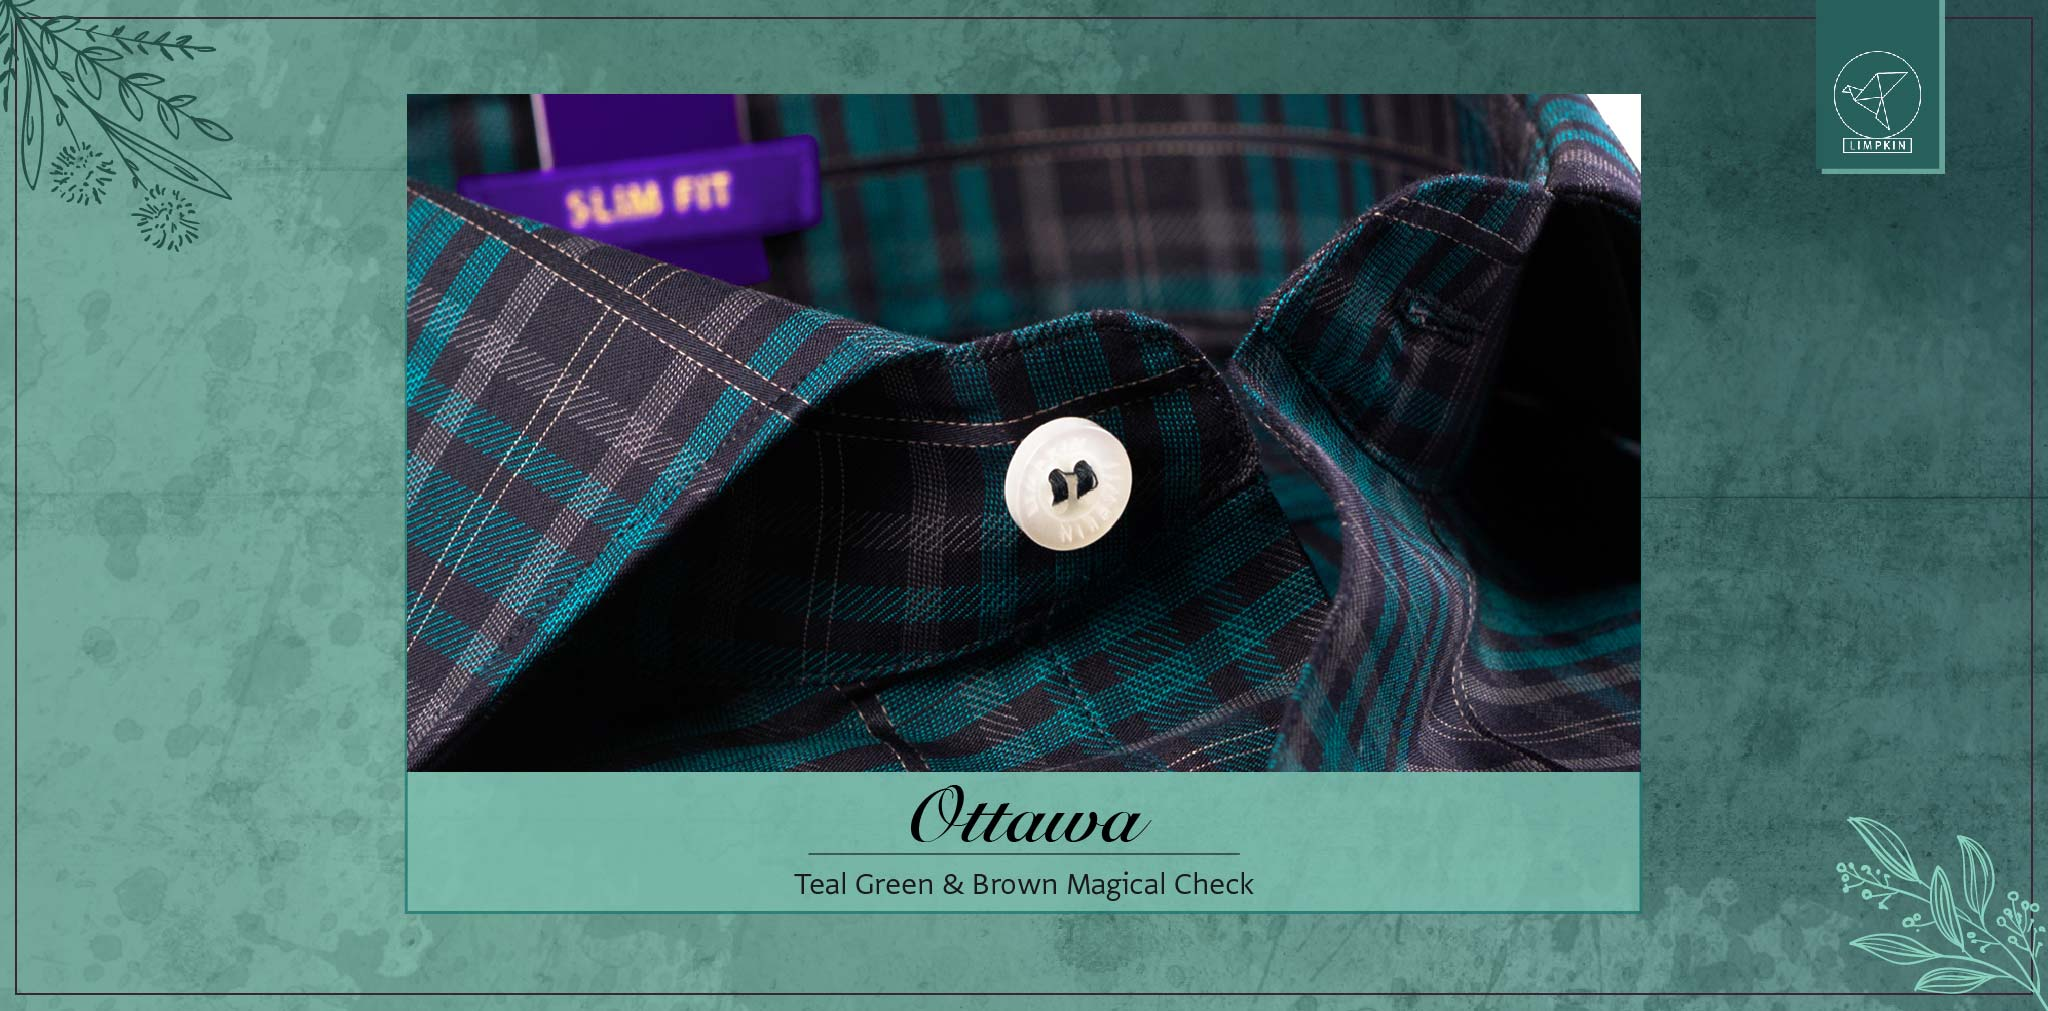 Ottawa- Teal Green & Brown Magical Check- 2 Ply Pure Egyptian Giza Cotton- Delivery from 21st Nov - Banner